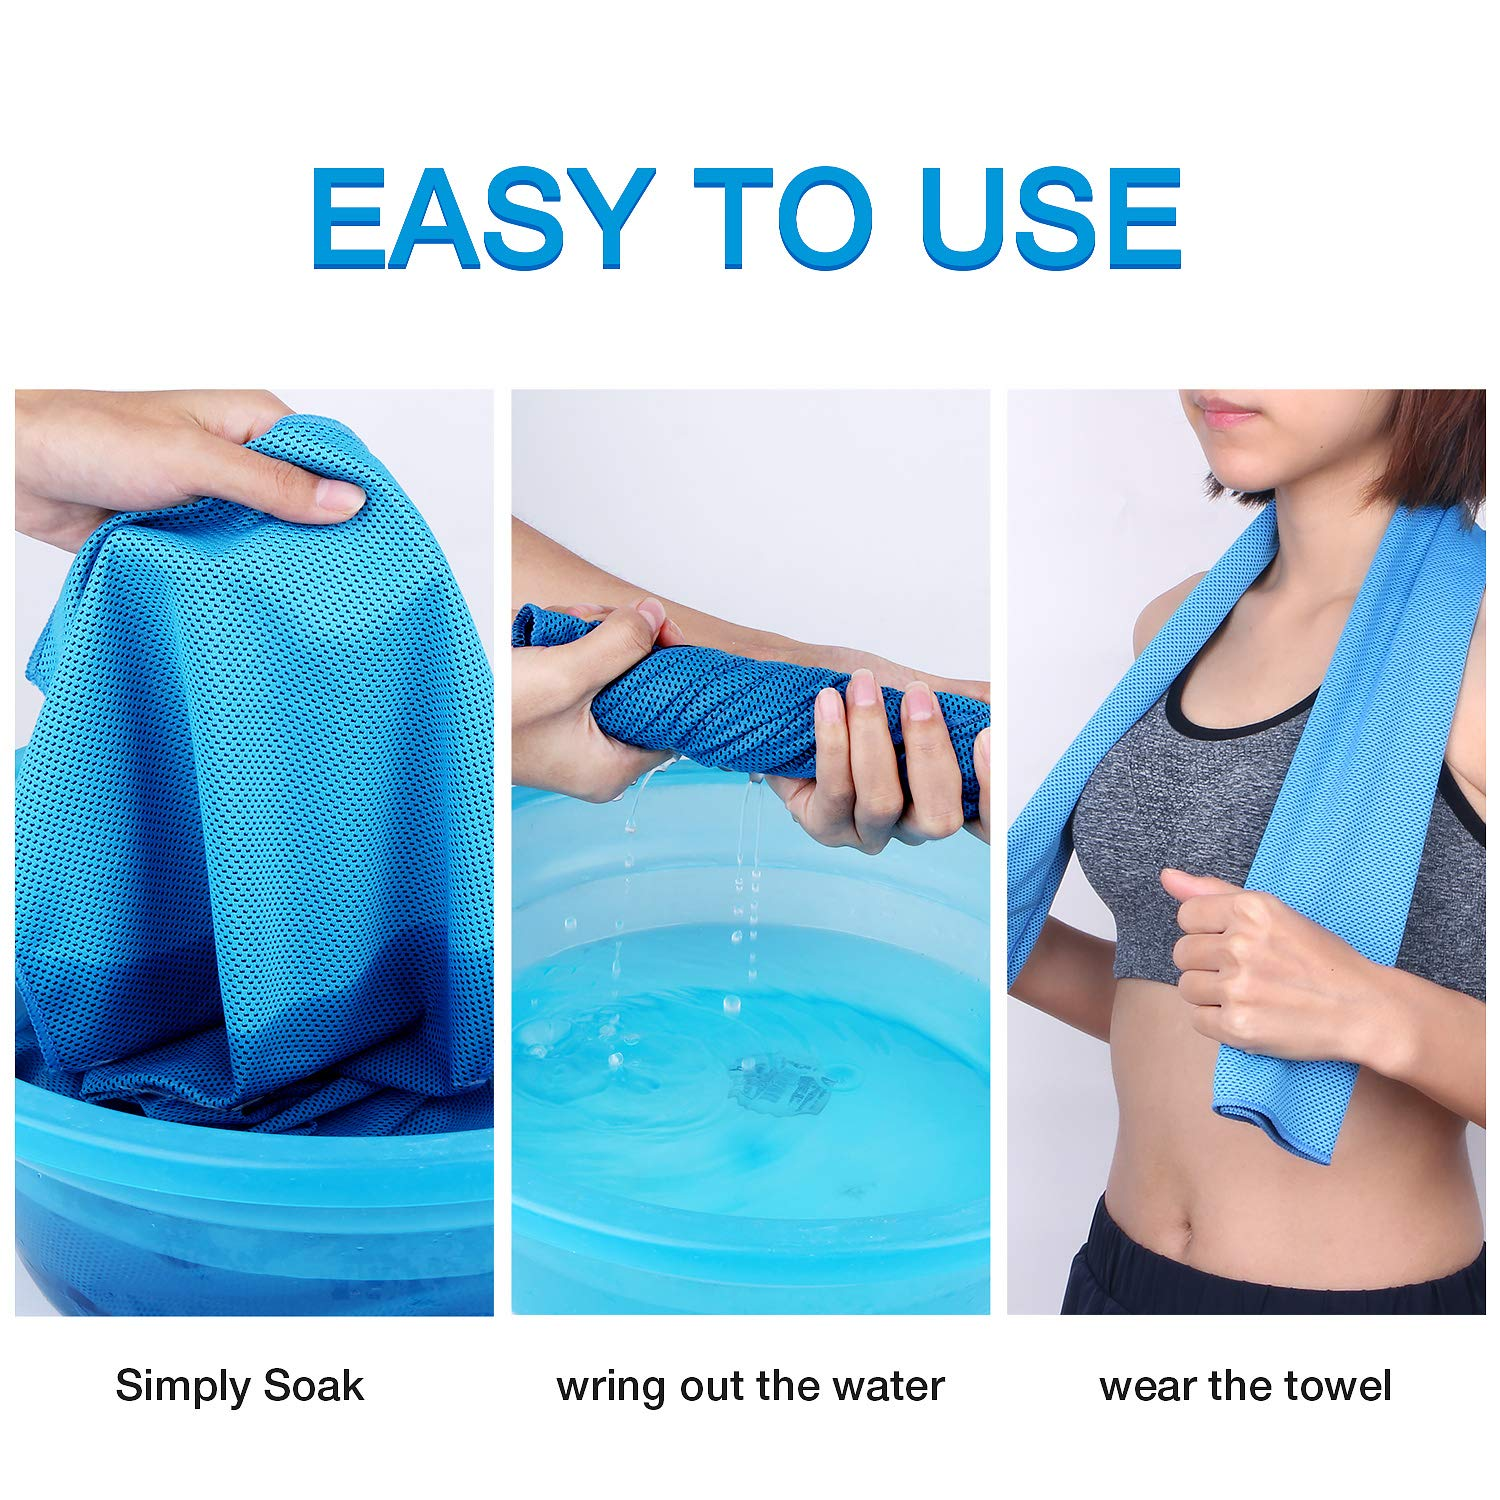 Getron Cooling Towel Chilling Neck Wrap for Indoor and Outdoor SPOR Soft Breathable Mesh Fabric Microfiber Ice Towel with Carrying Pouch Design for Instant Cooling Relief 4 Packs 35.43x 11.81